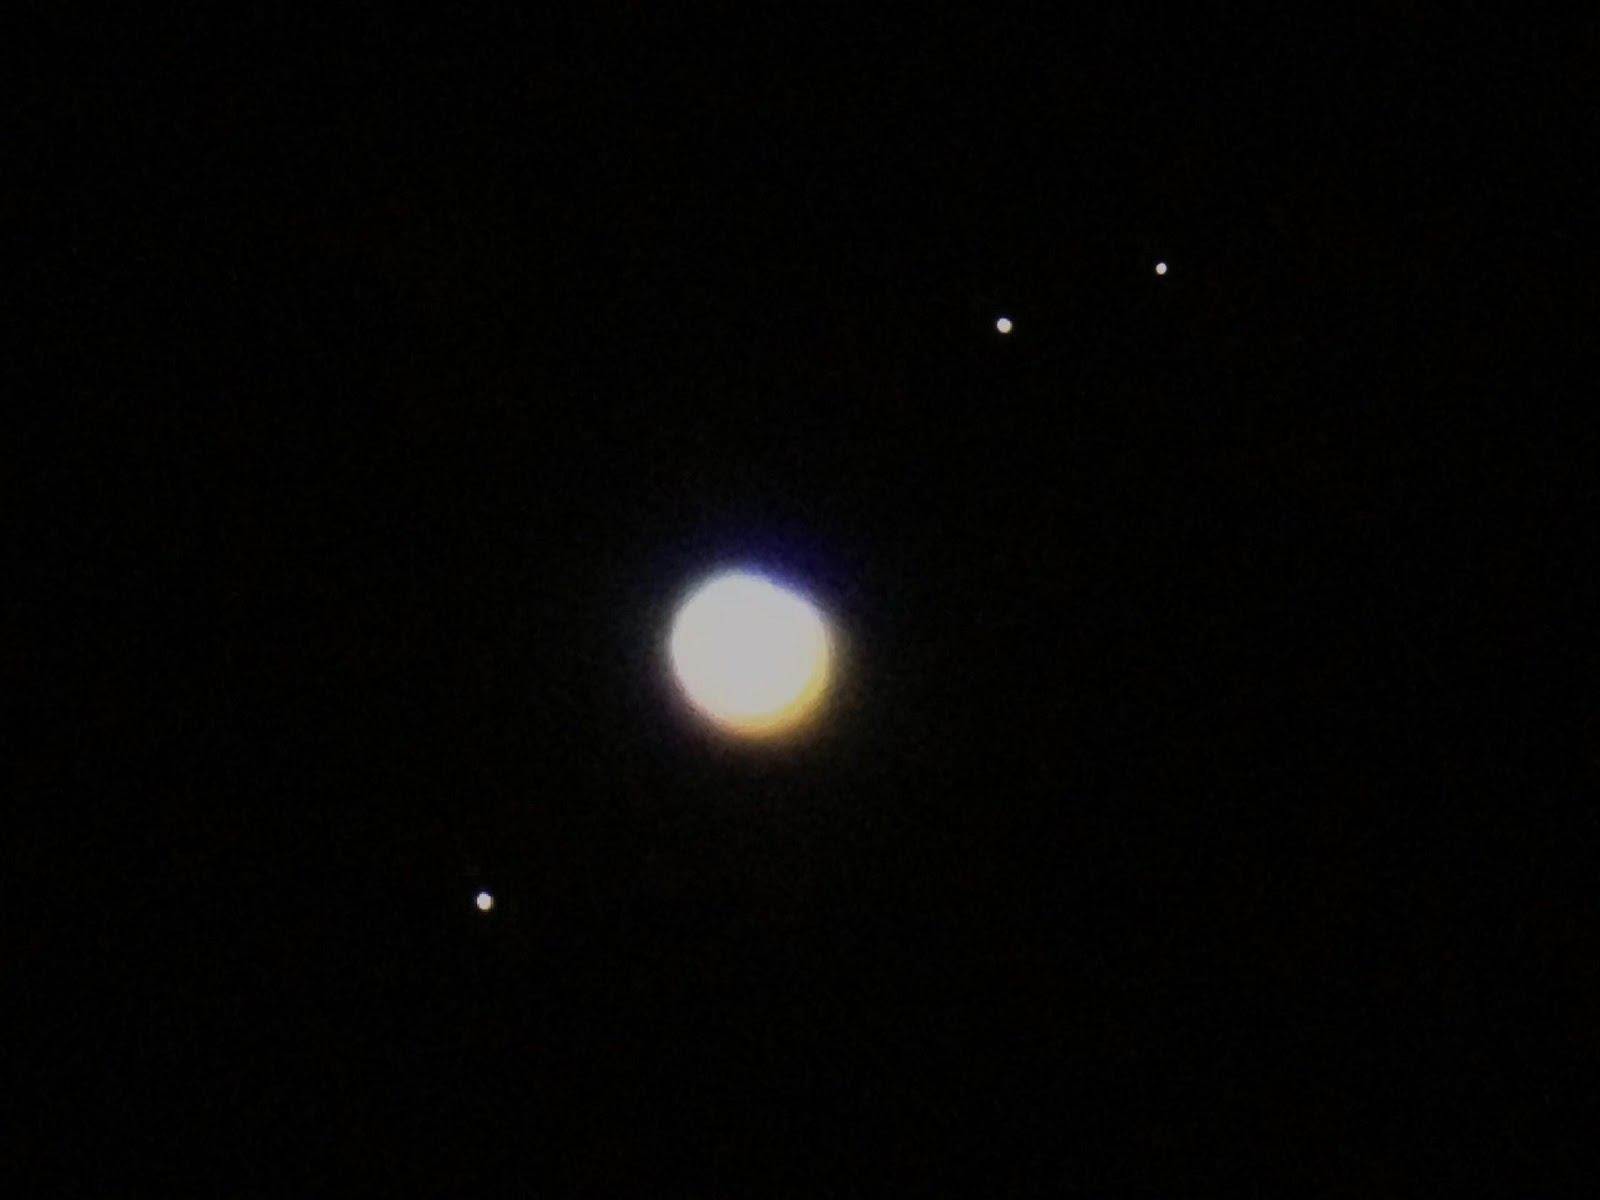 jupiter and moons through telescope - photo #1